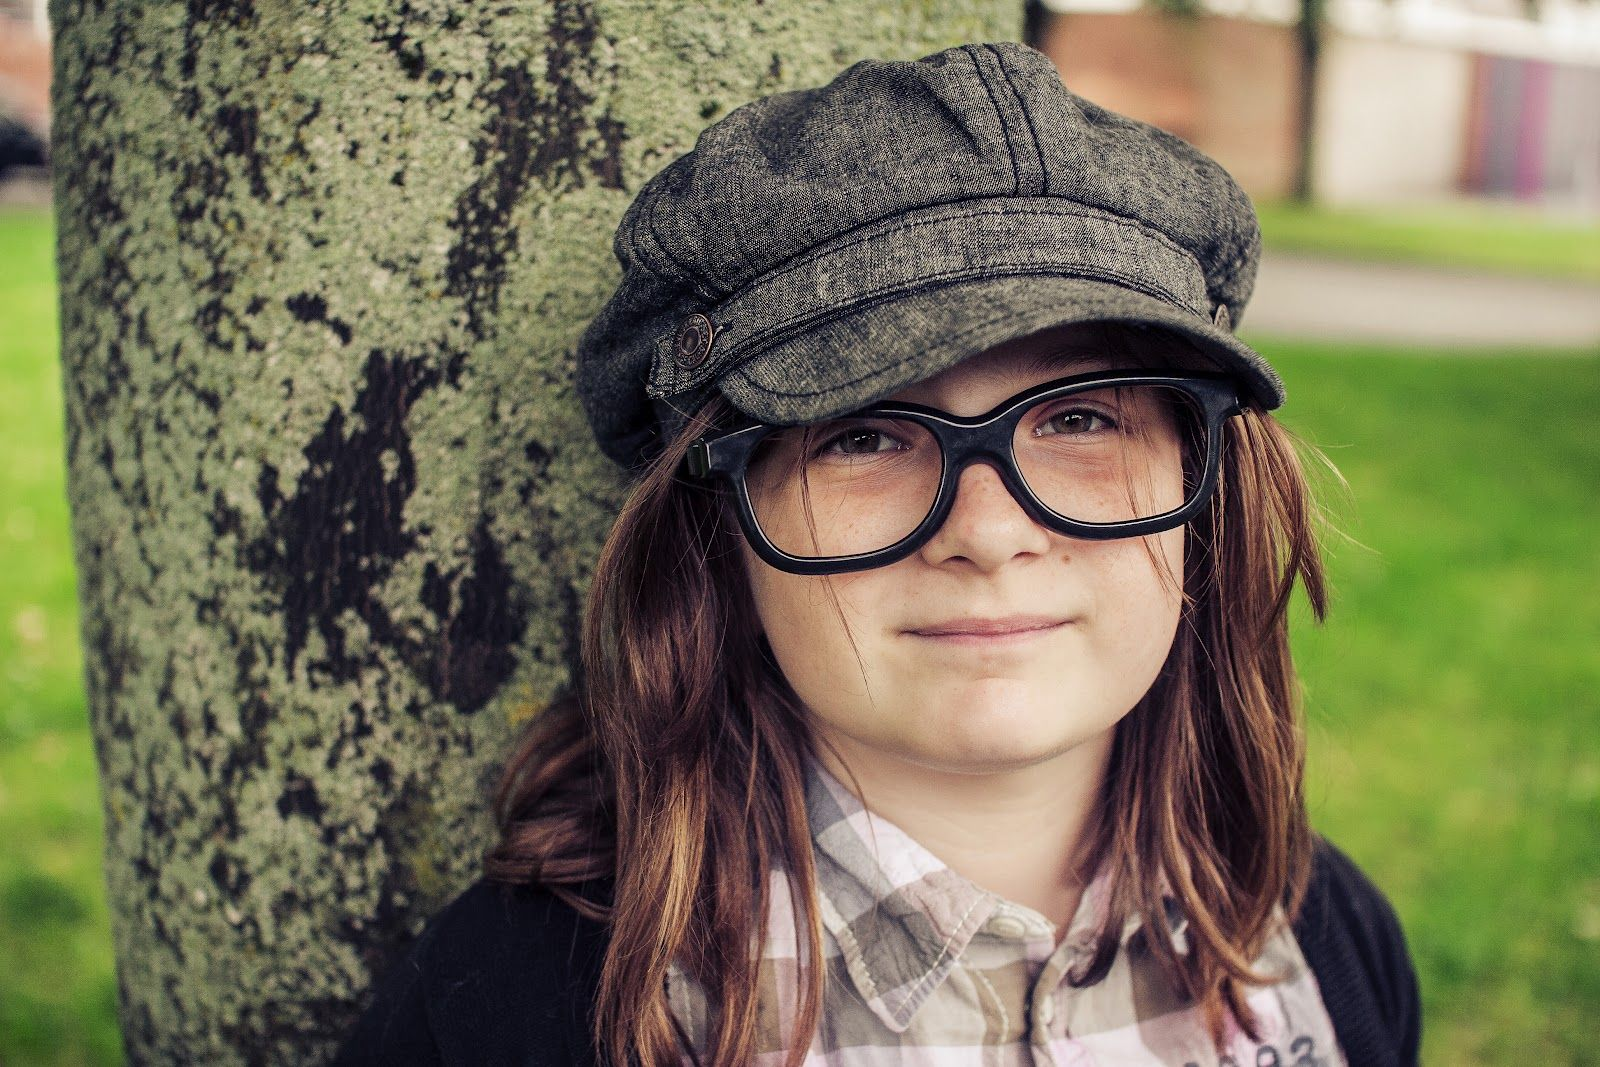 My daughter, she's gone geek chic